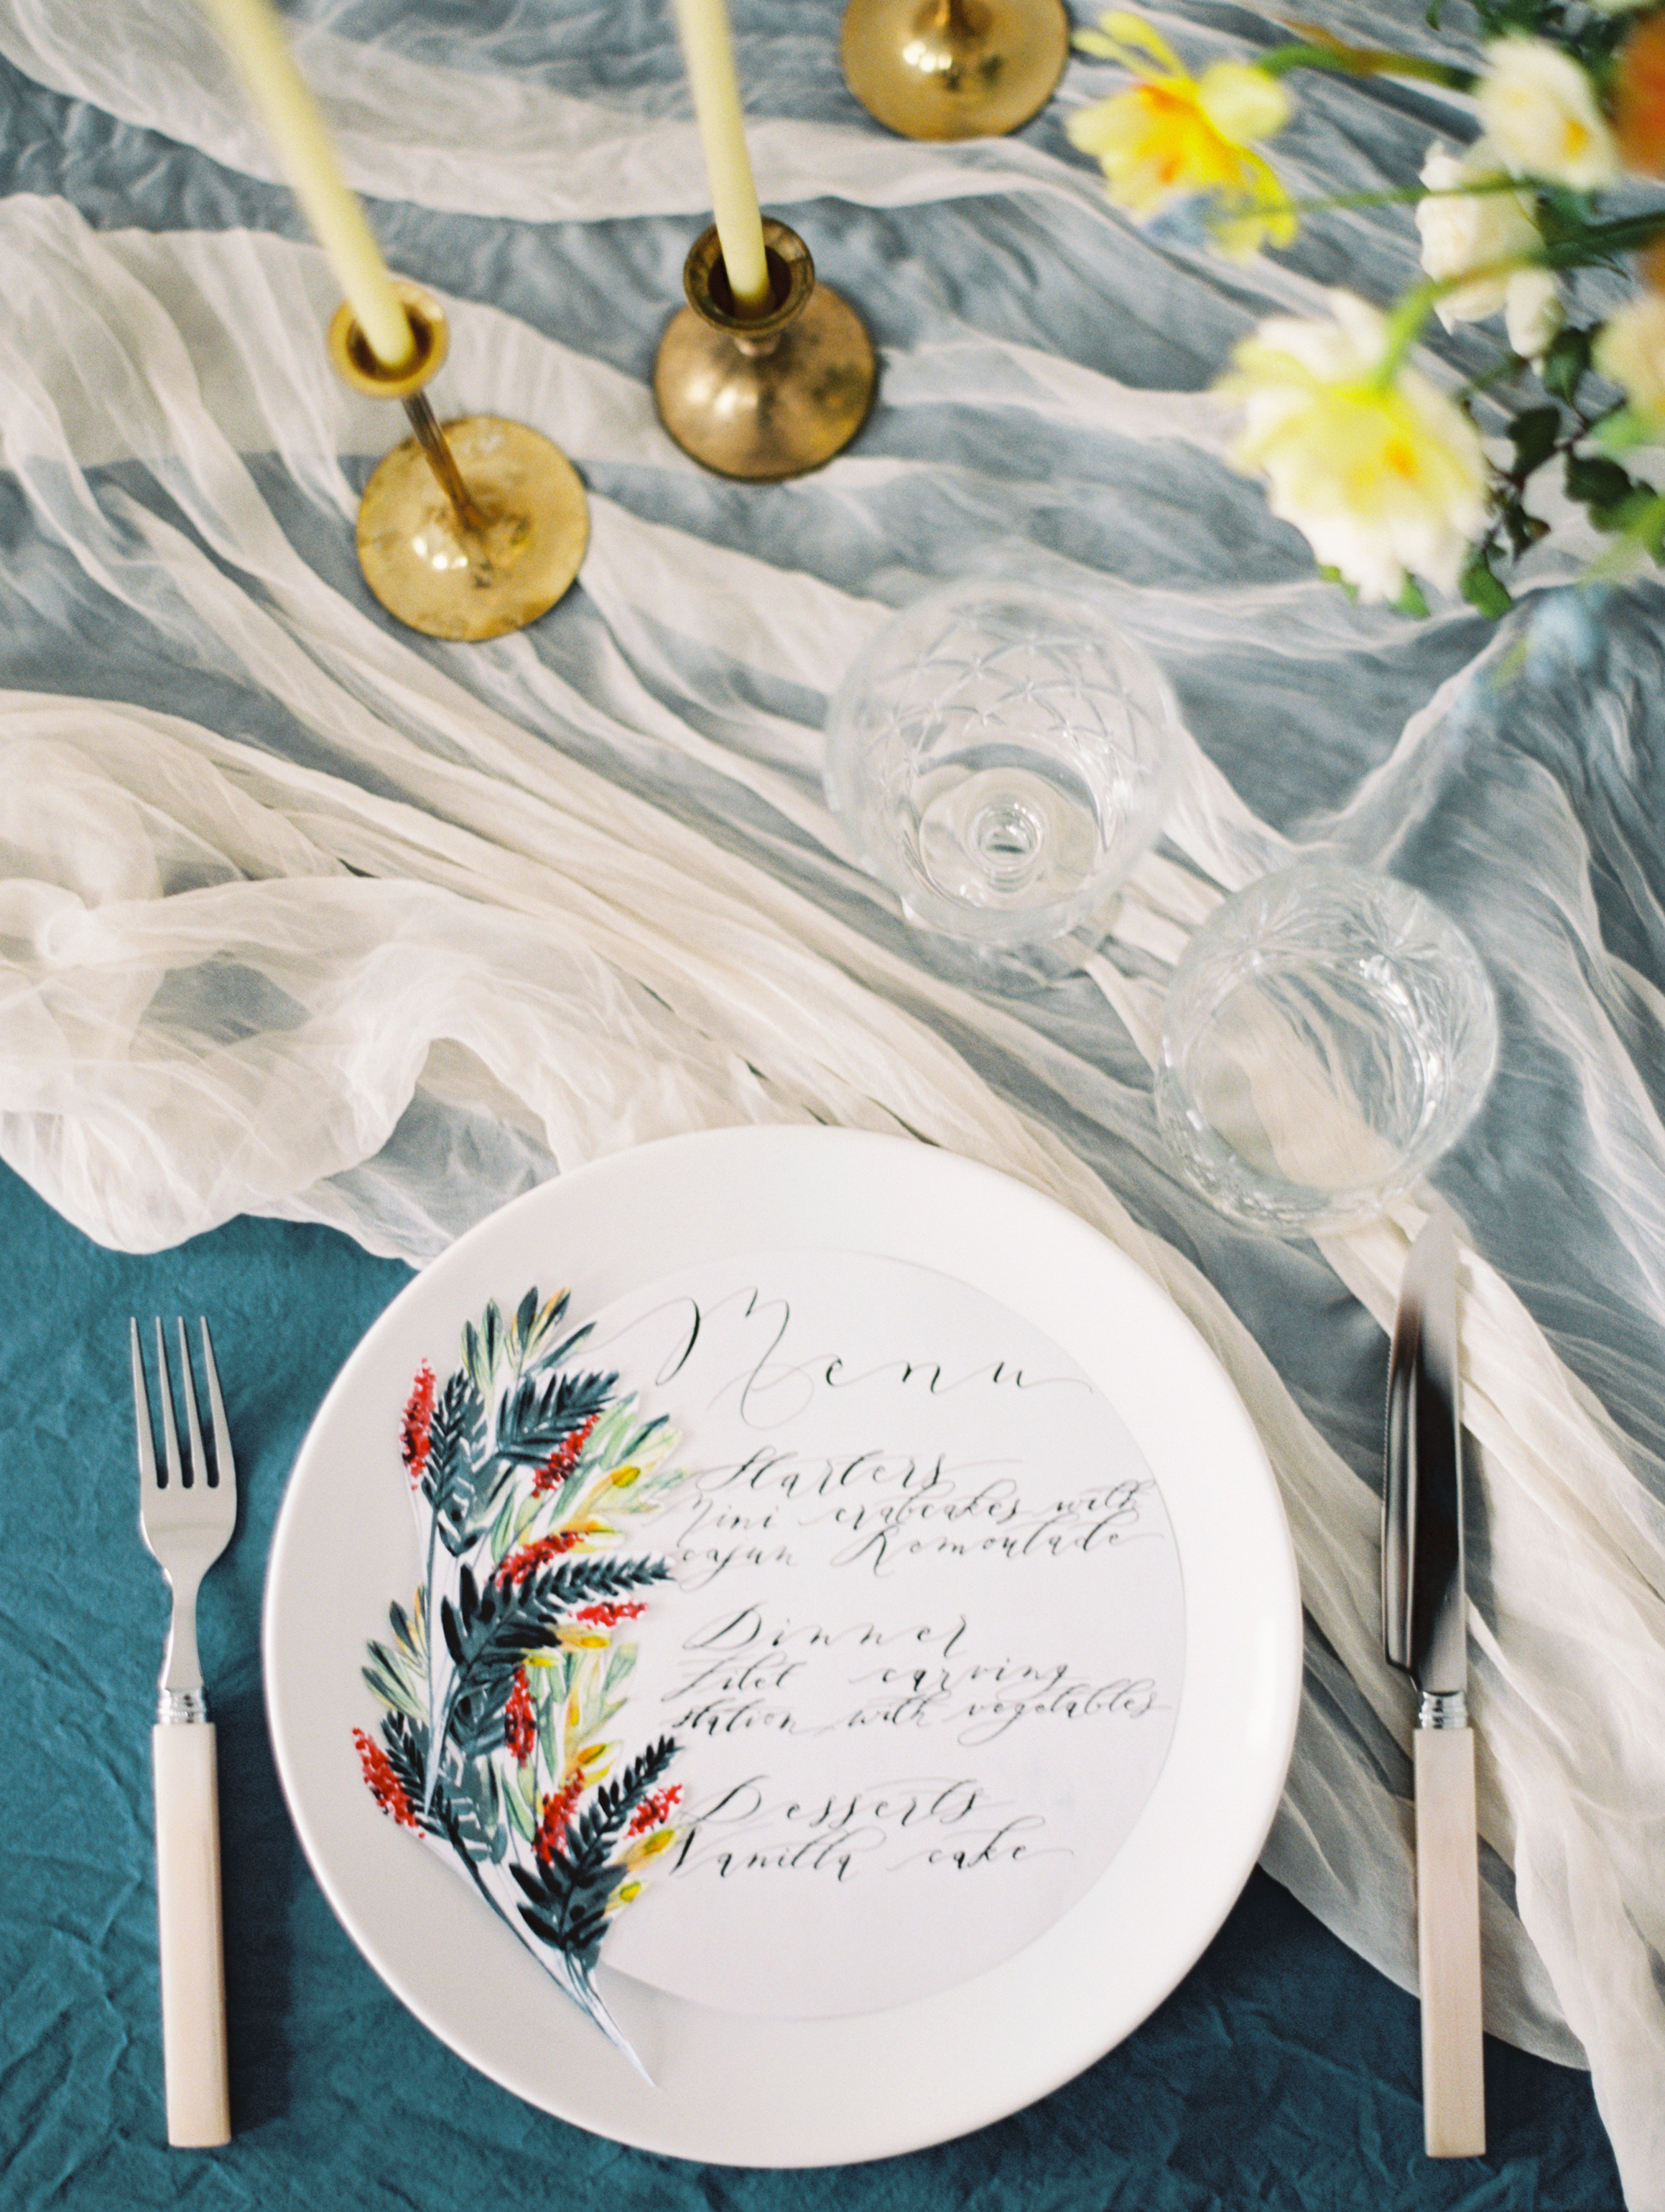 Hand Painted Circle Menus.Colorful hand painted wedding stationery.Wedding Stationery by Crimson Letters. Wedding Planner www.andreaeppolitoevents.com.